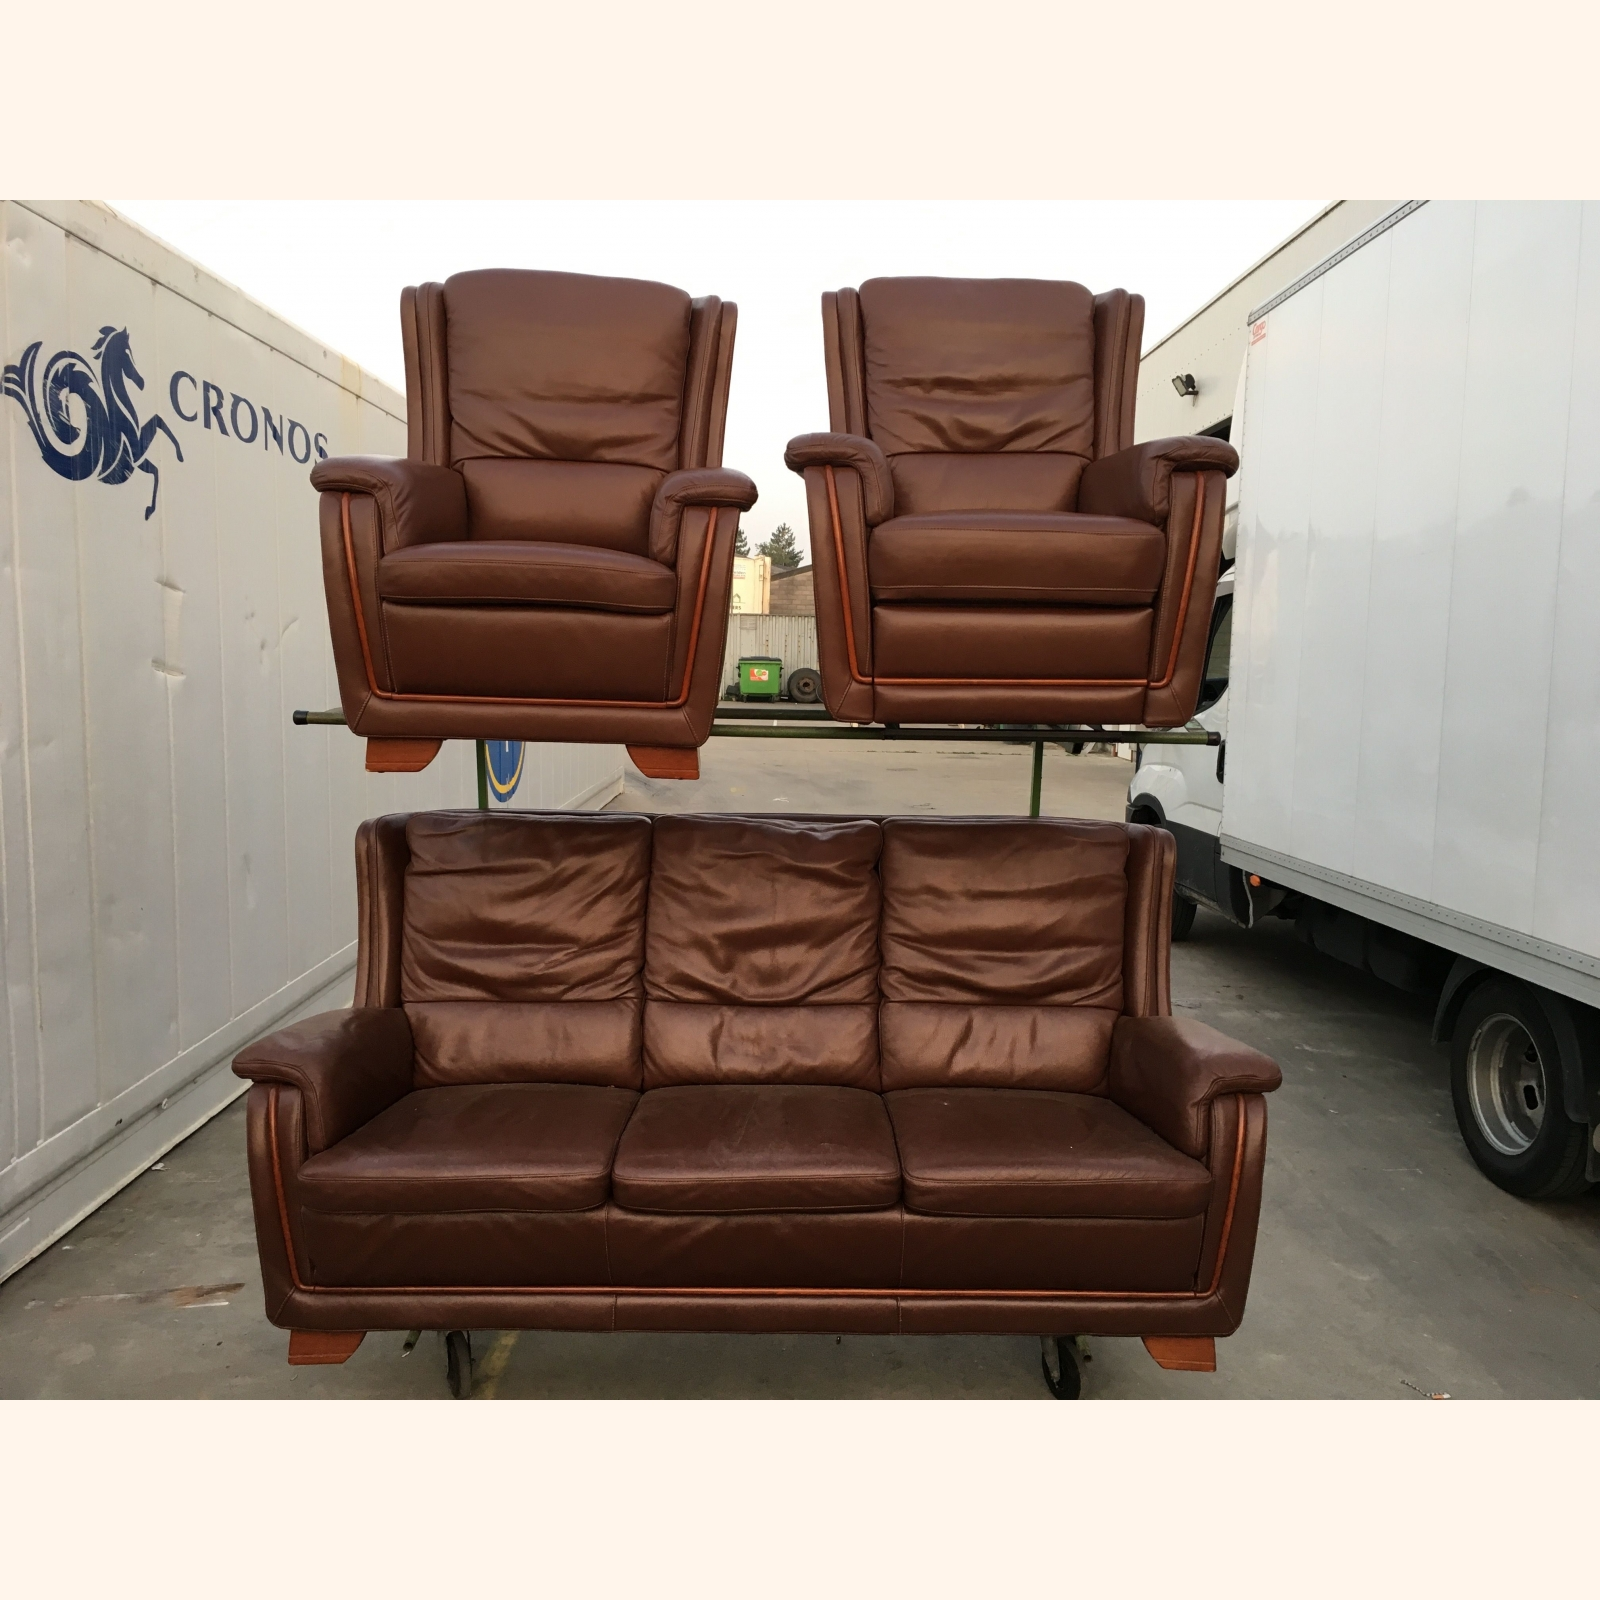 A Leather Living Room Furniture Sets Mix 1m3 A